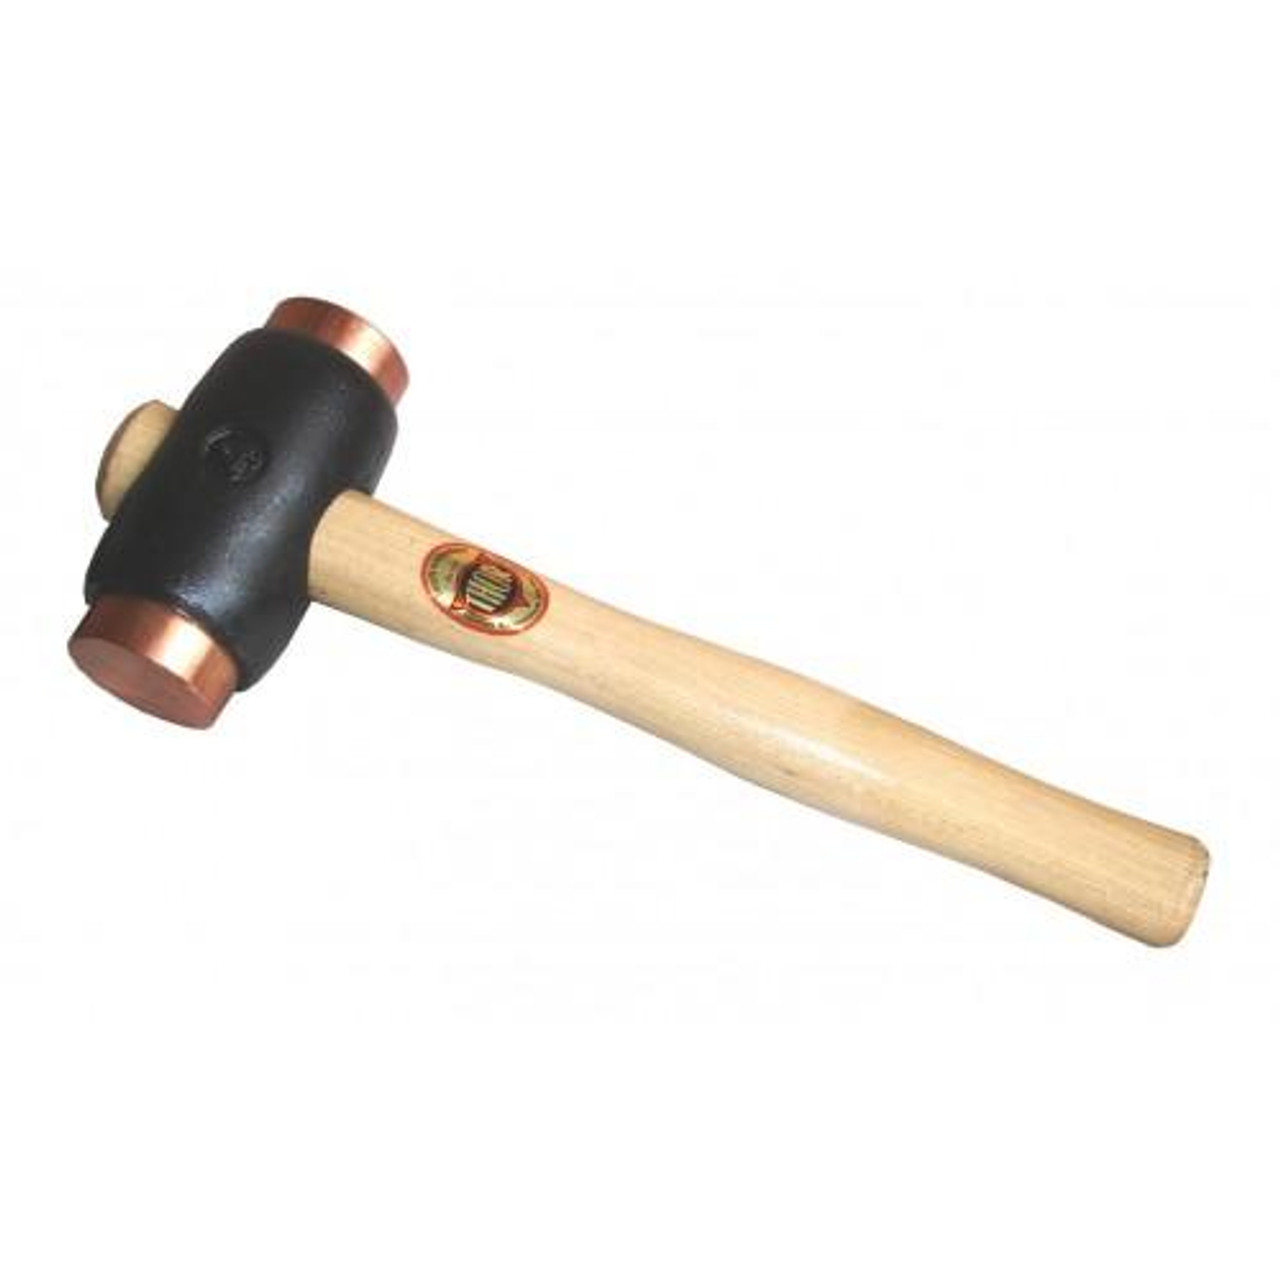 "Thor 04-316 Iron hammer with 2"" copper faces, 6 1/2 lbs. 12"" wood handle."